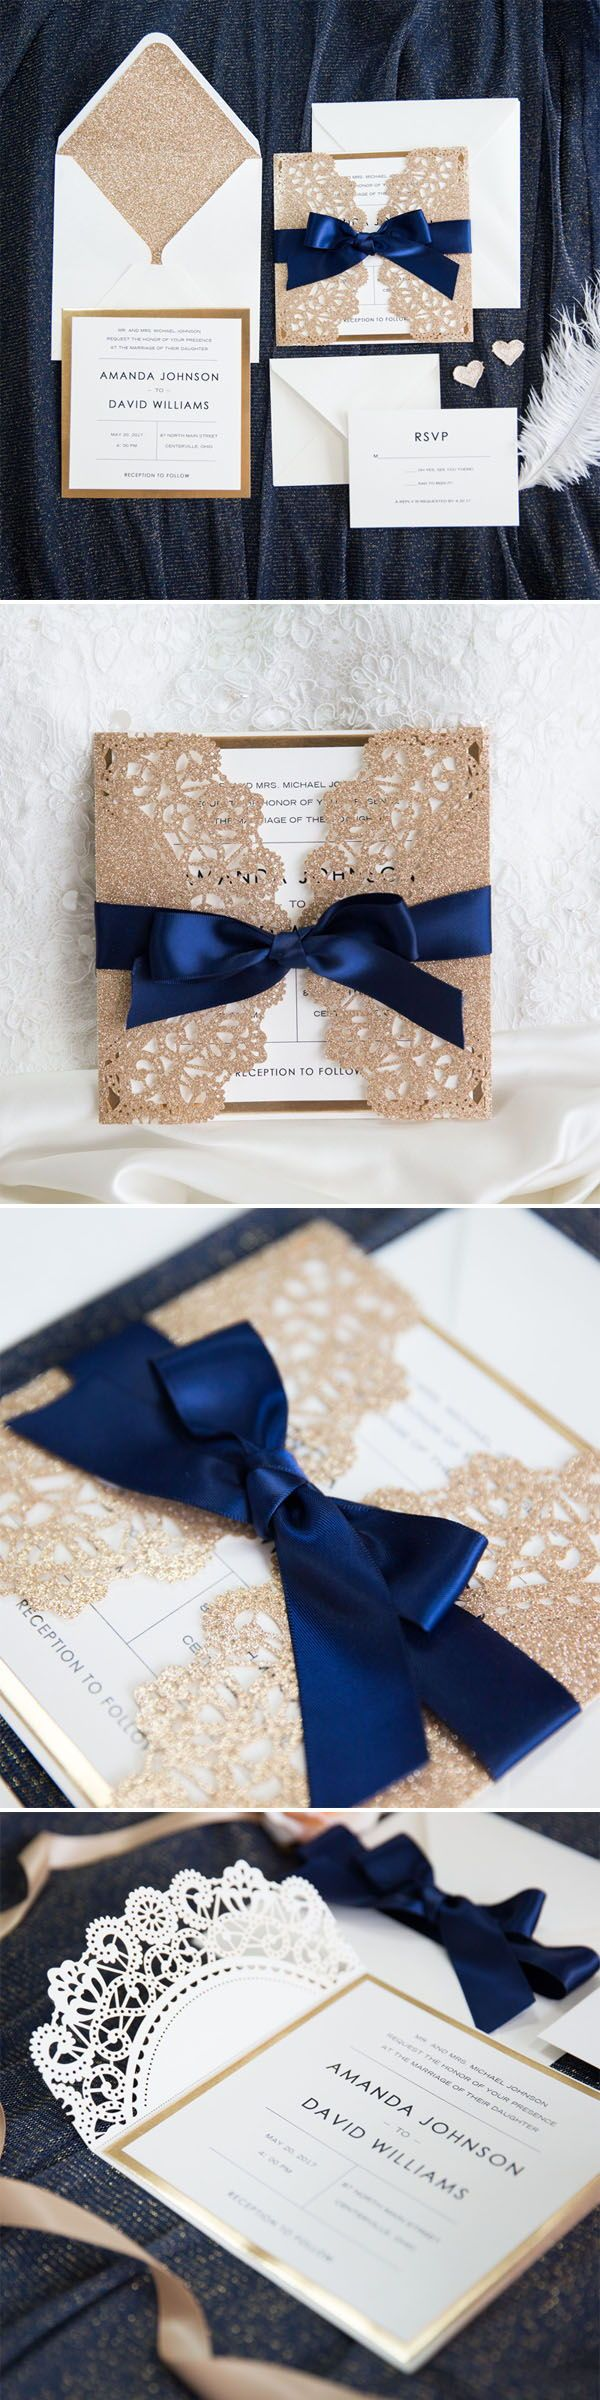 tie ribbon wedding invitation%0A Elegant Rose Gold and Navy Blue Glitter Wedding Invitations with Gold  Glittery Mirror Paper Bottom EWWS